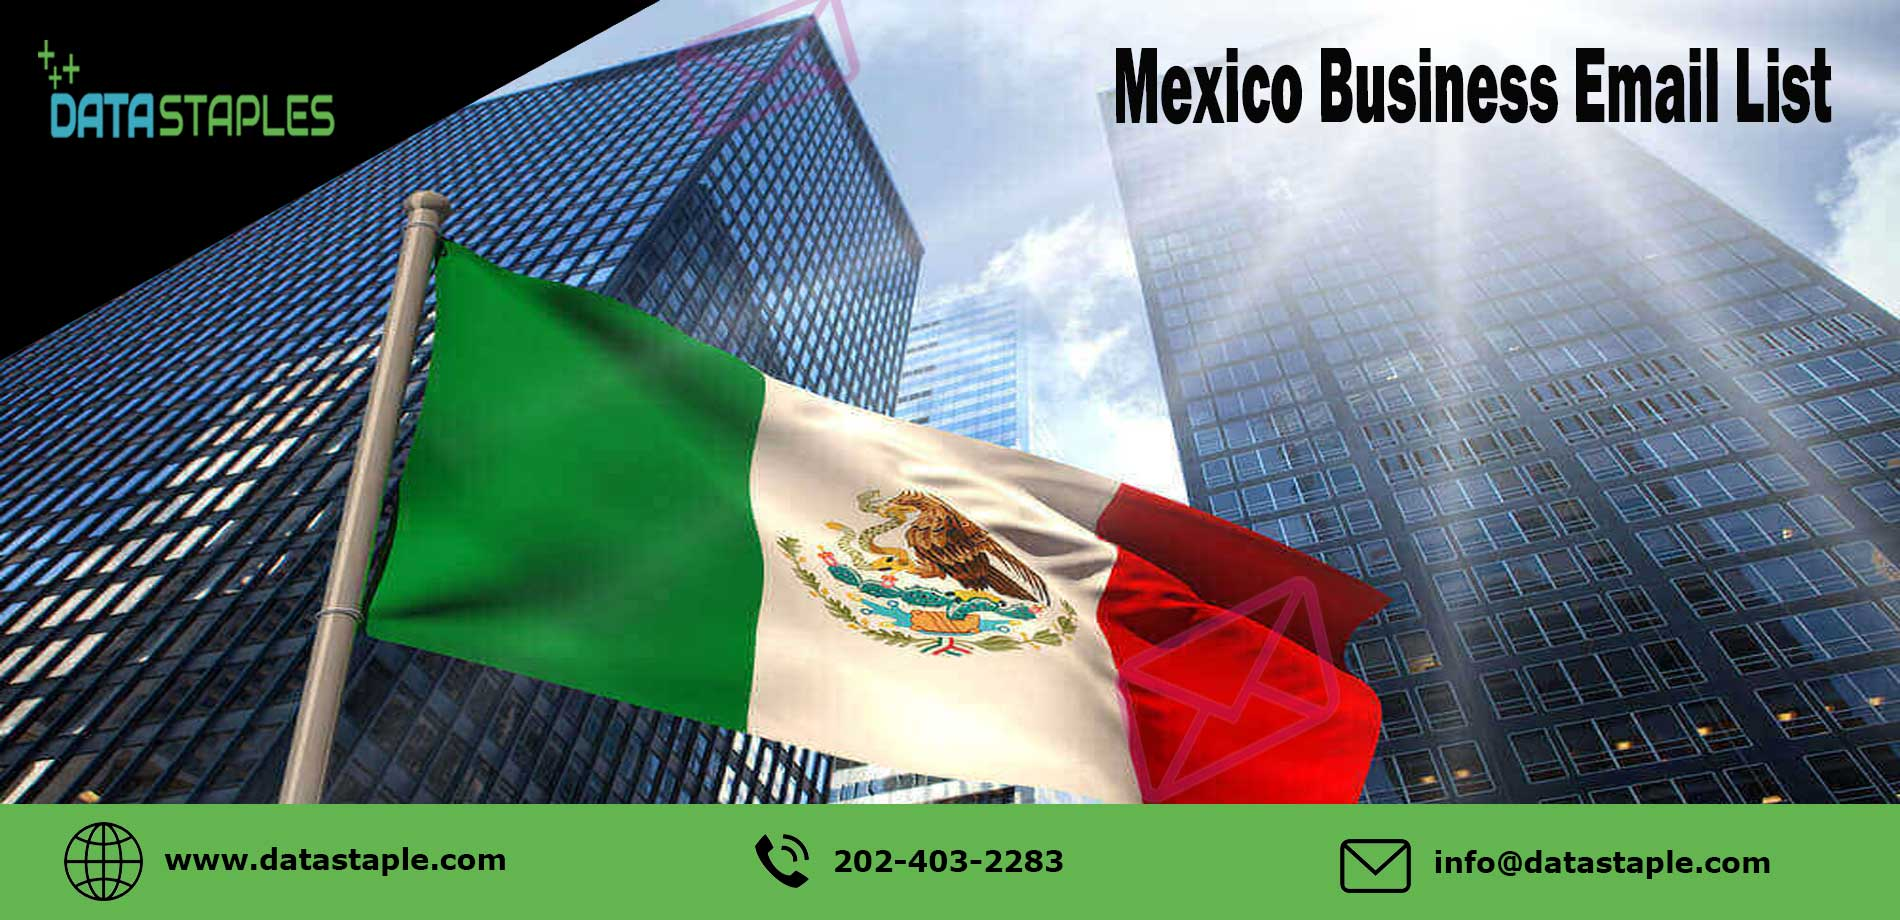 Mexico Business Email List   DataStaples